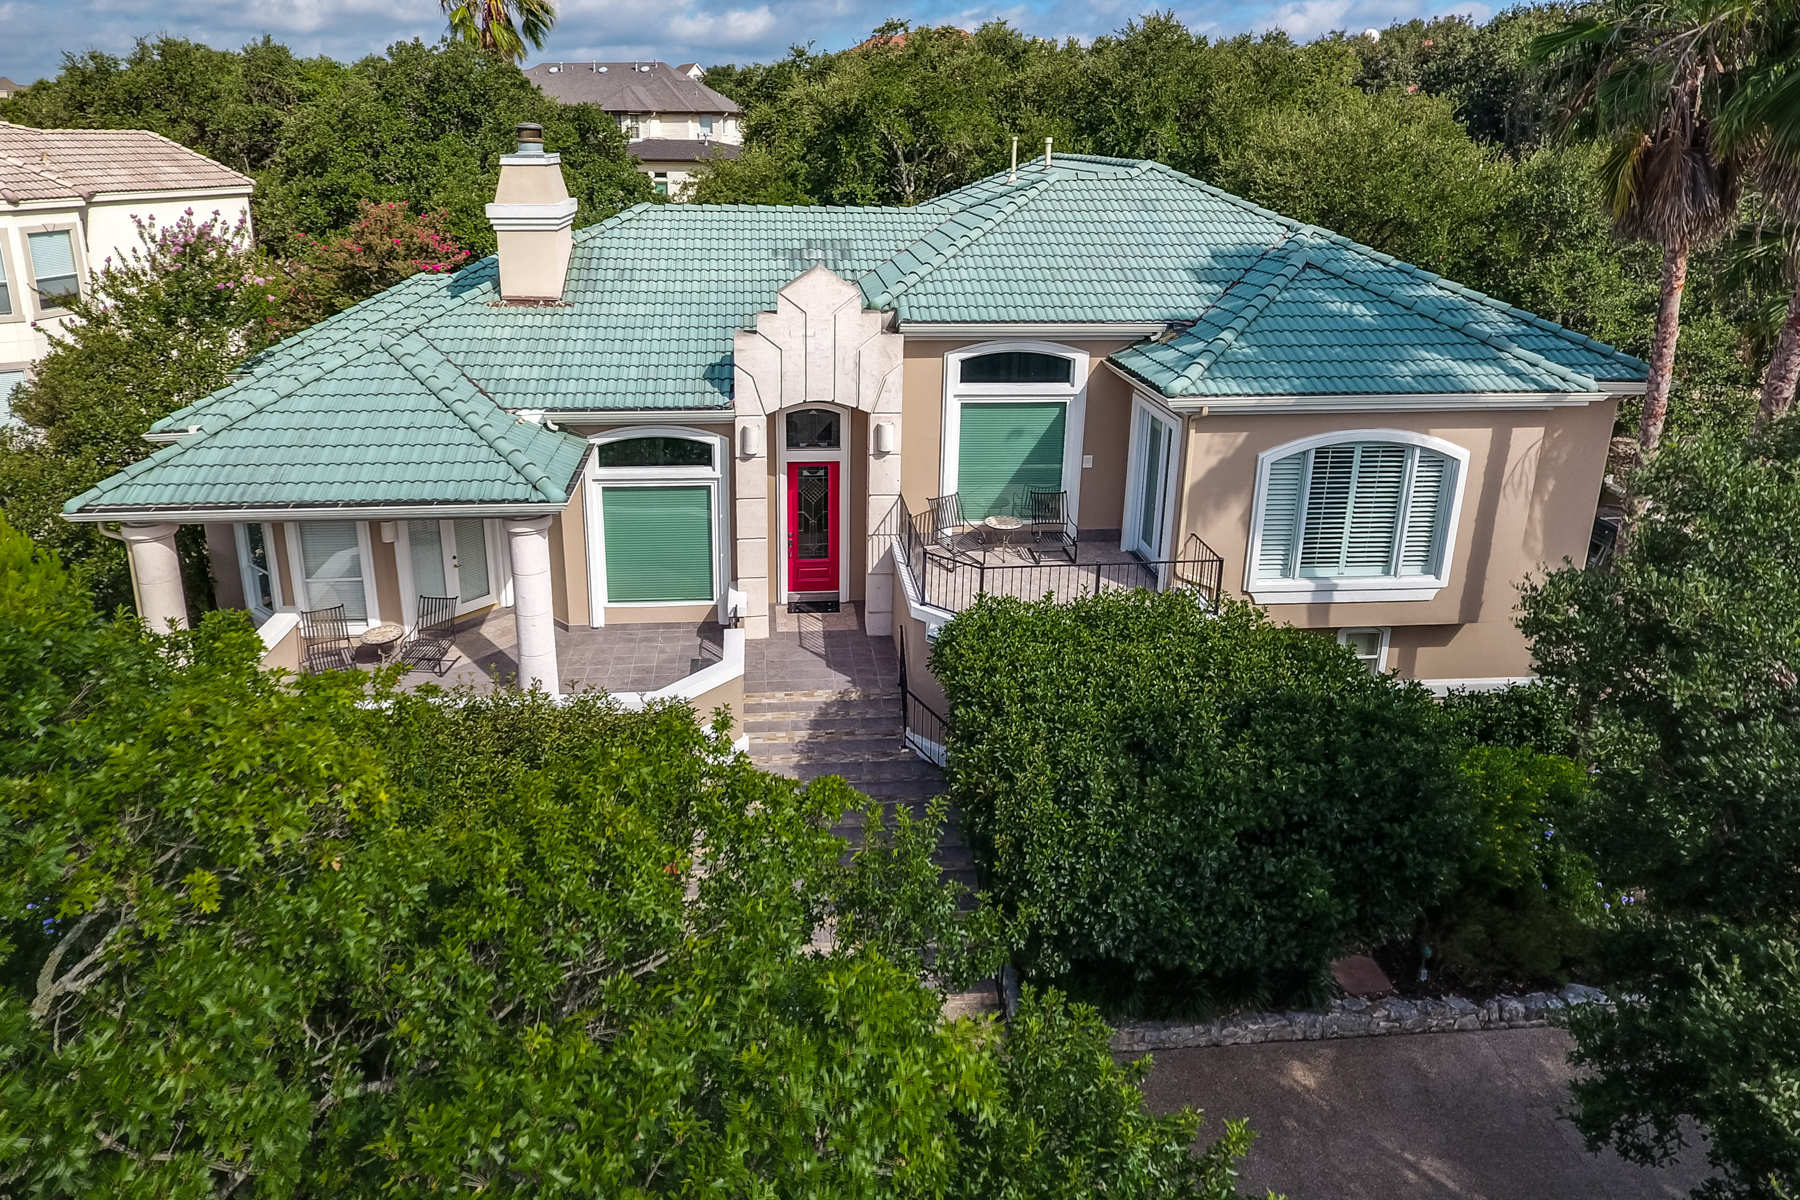 Single Family Home for Sale at Stunning Villa in Greystone Country Estates 19122 Nature Oaks San Antonio, Texas, 78258 United States